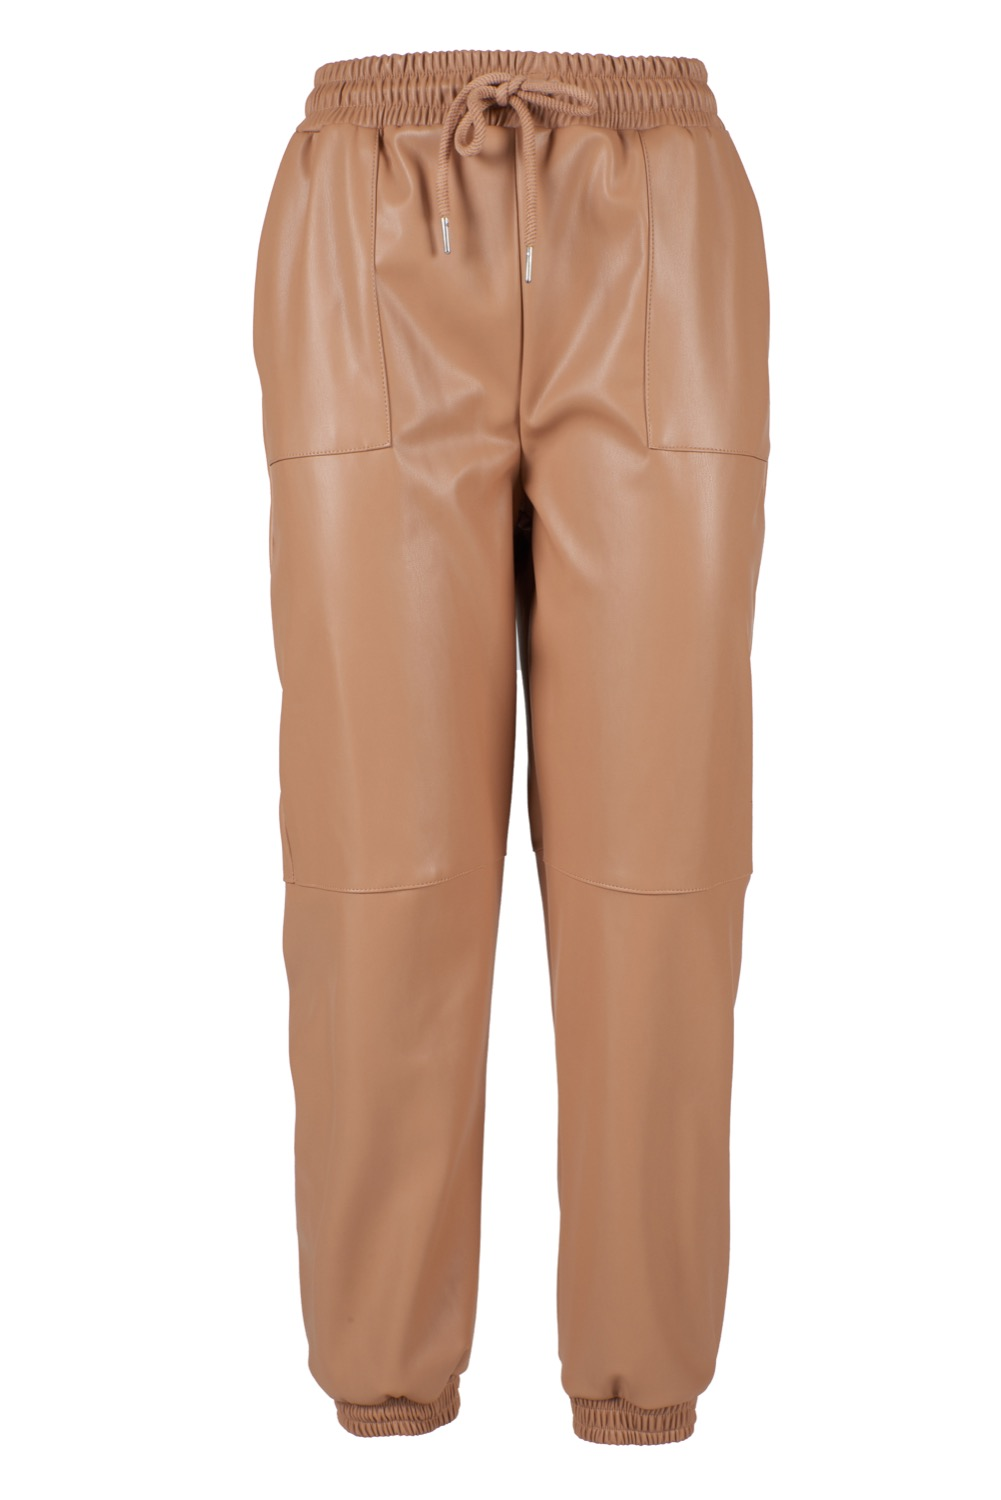 PANTALONE DONNA IN PU CON COULISSE